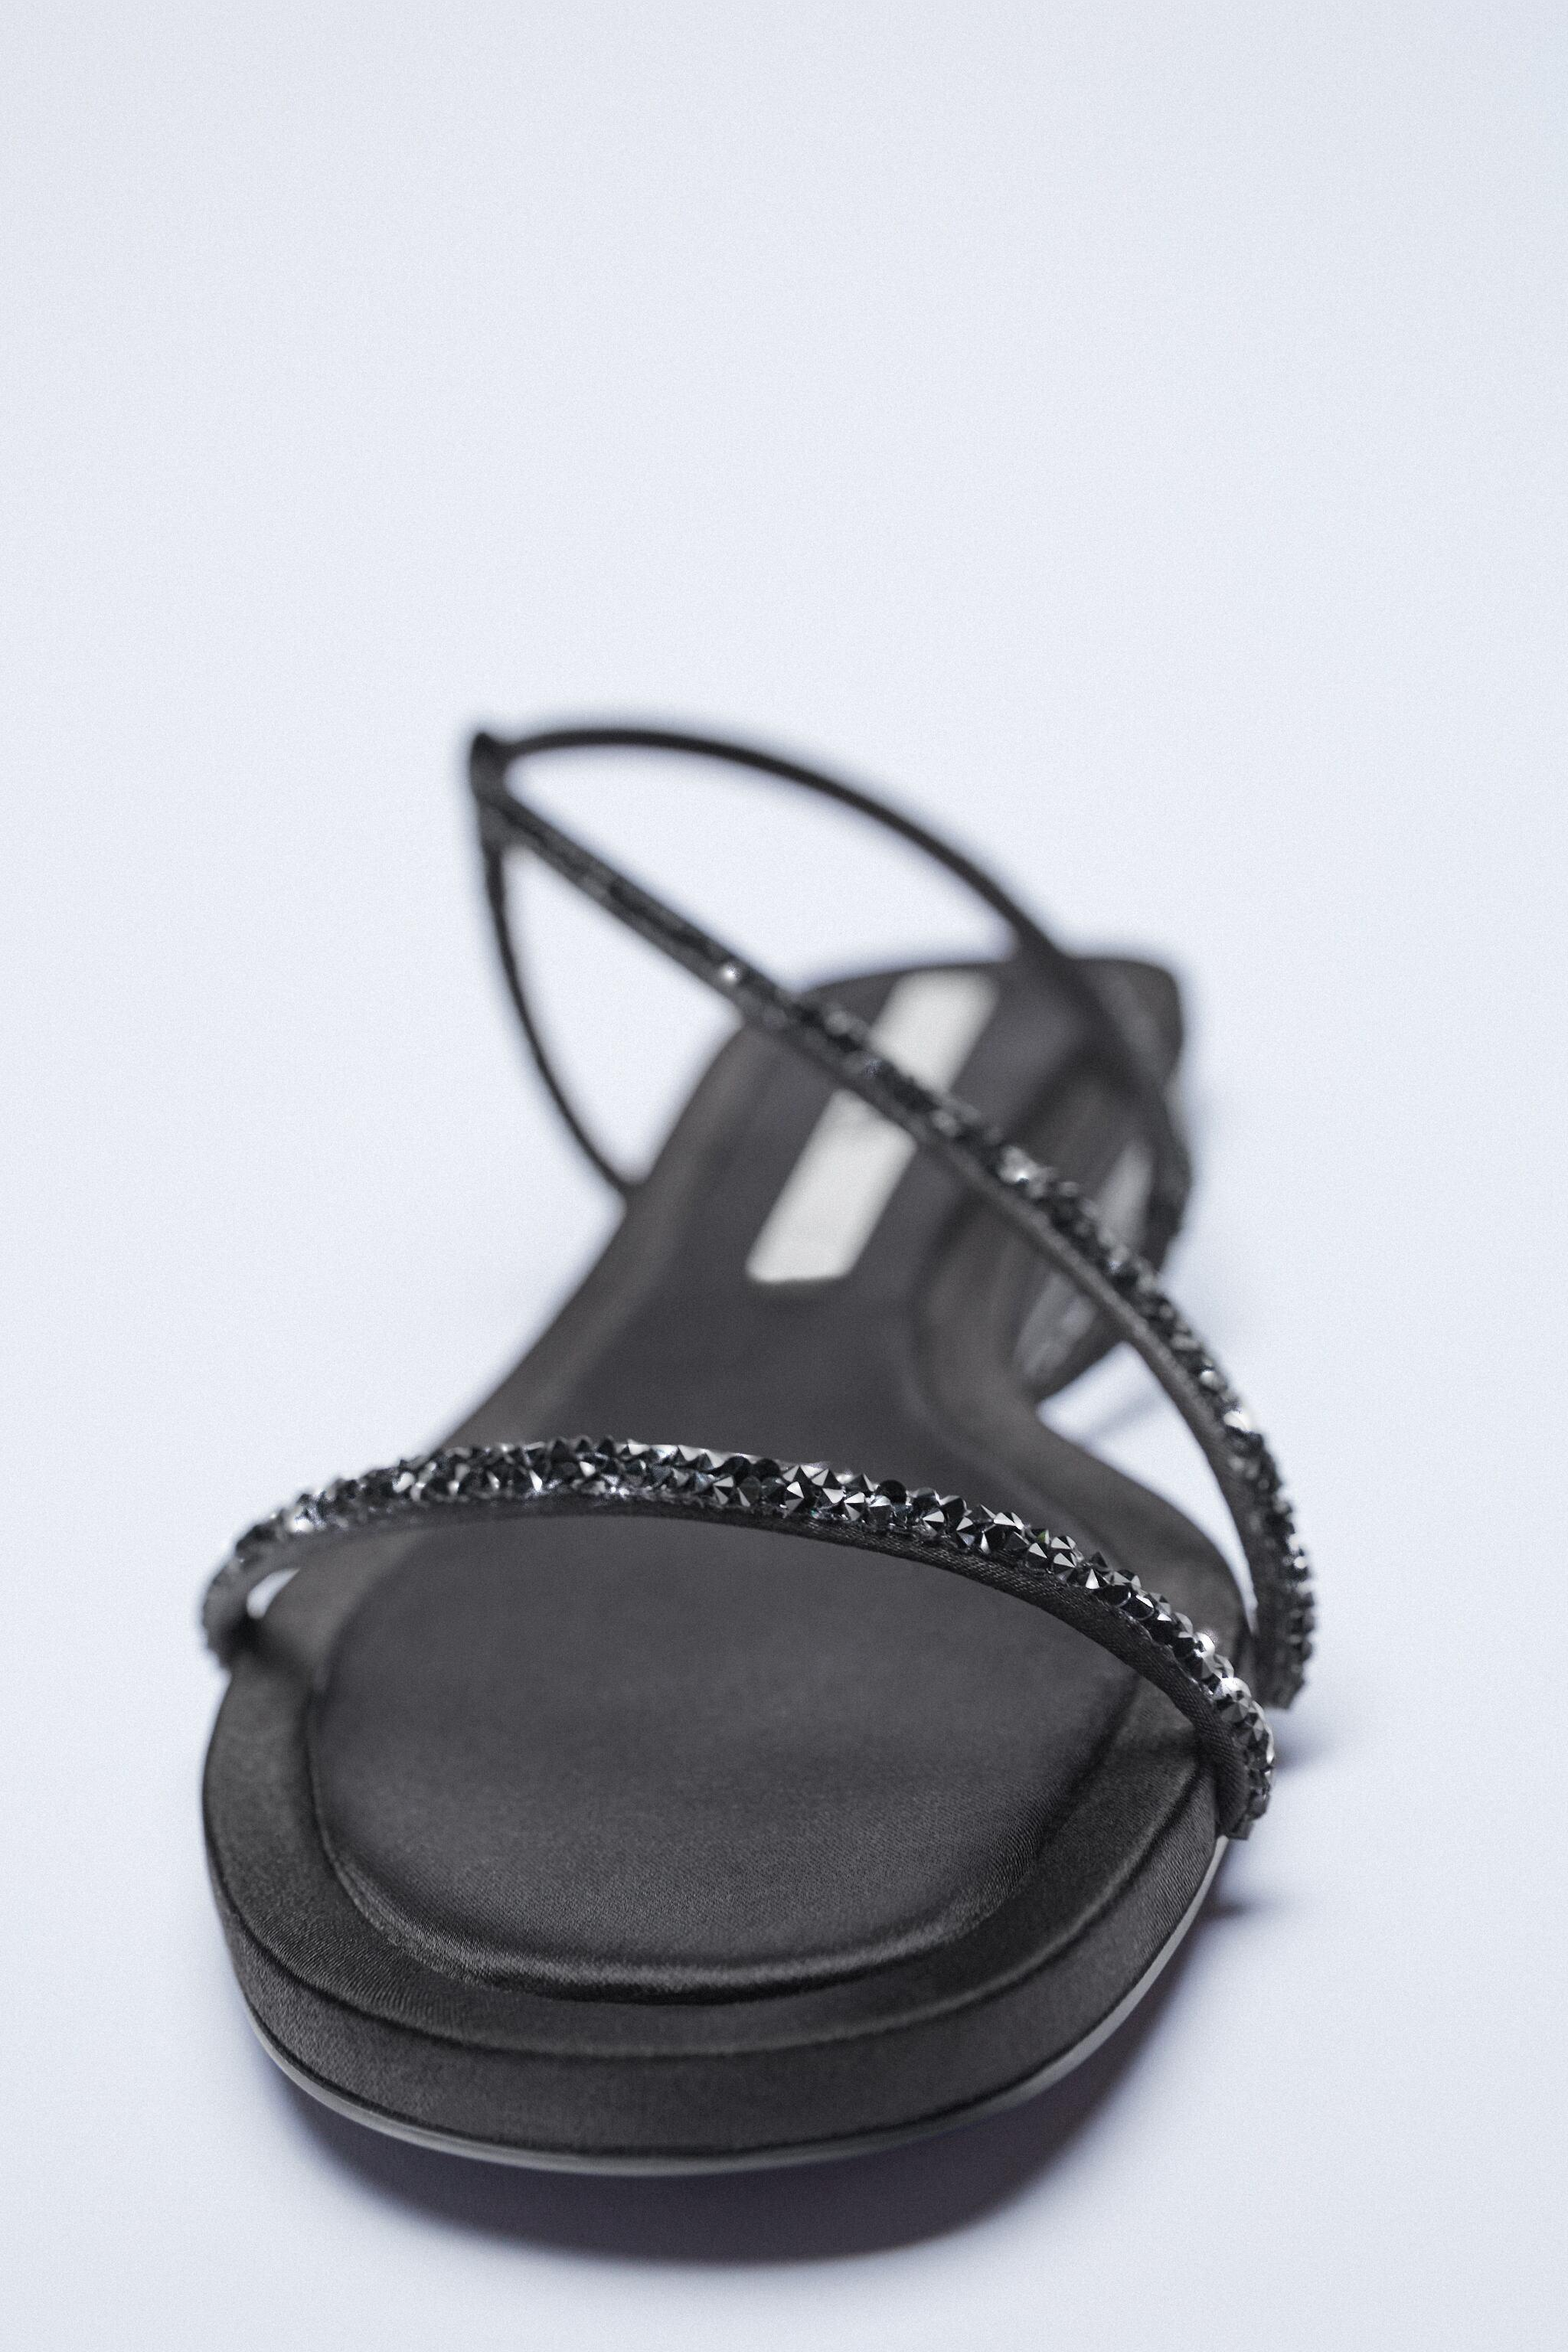 SPARKLY LOW HEELED SANDALS 6